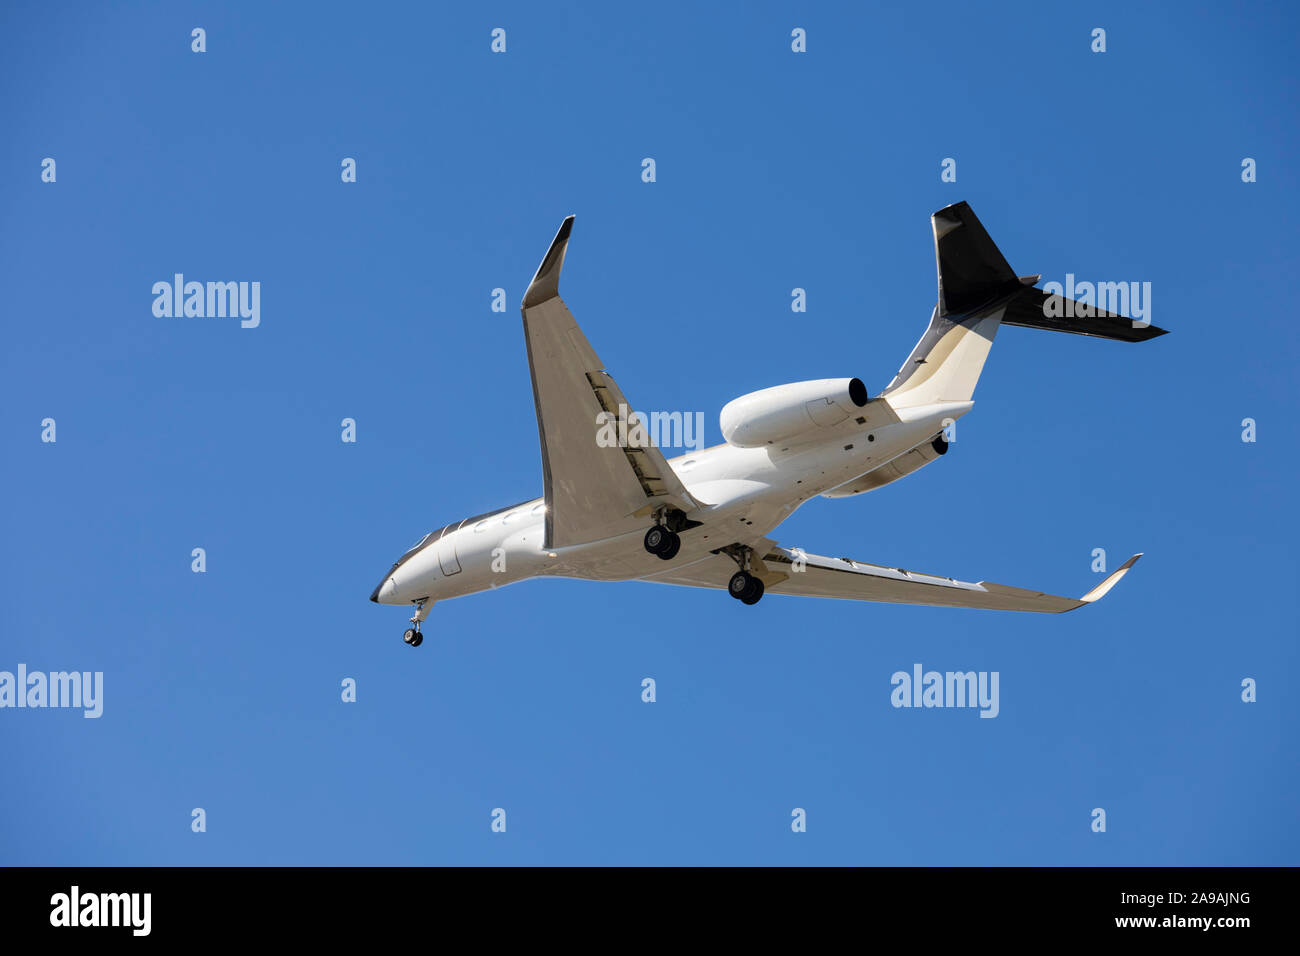 Private jet on approach into LAX, Los Angeles, California, United States of America. USA Stock Photo